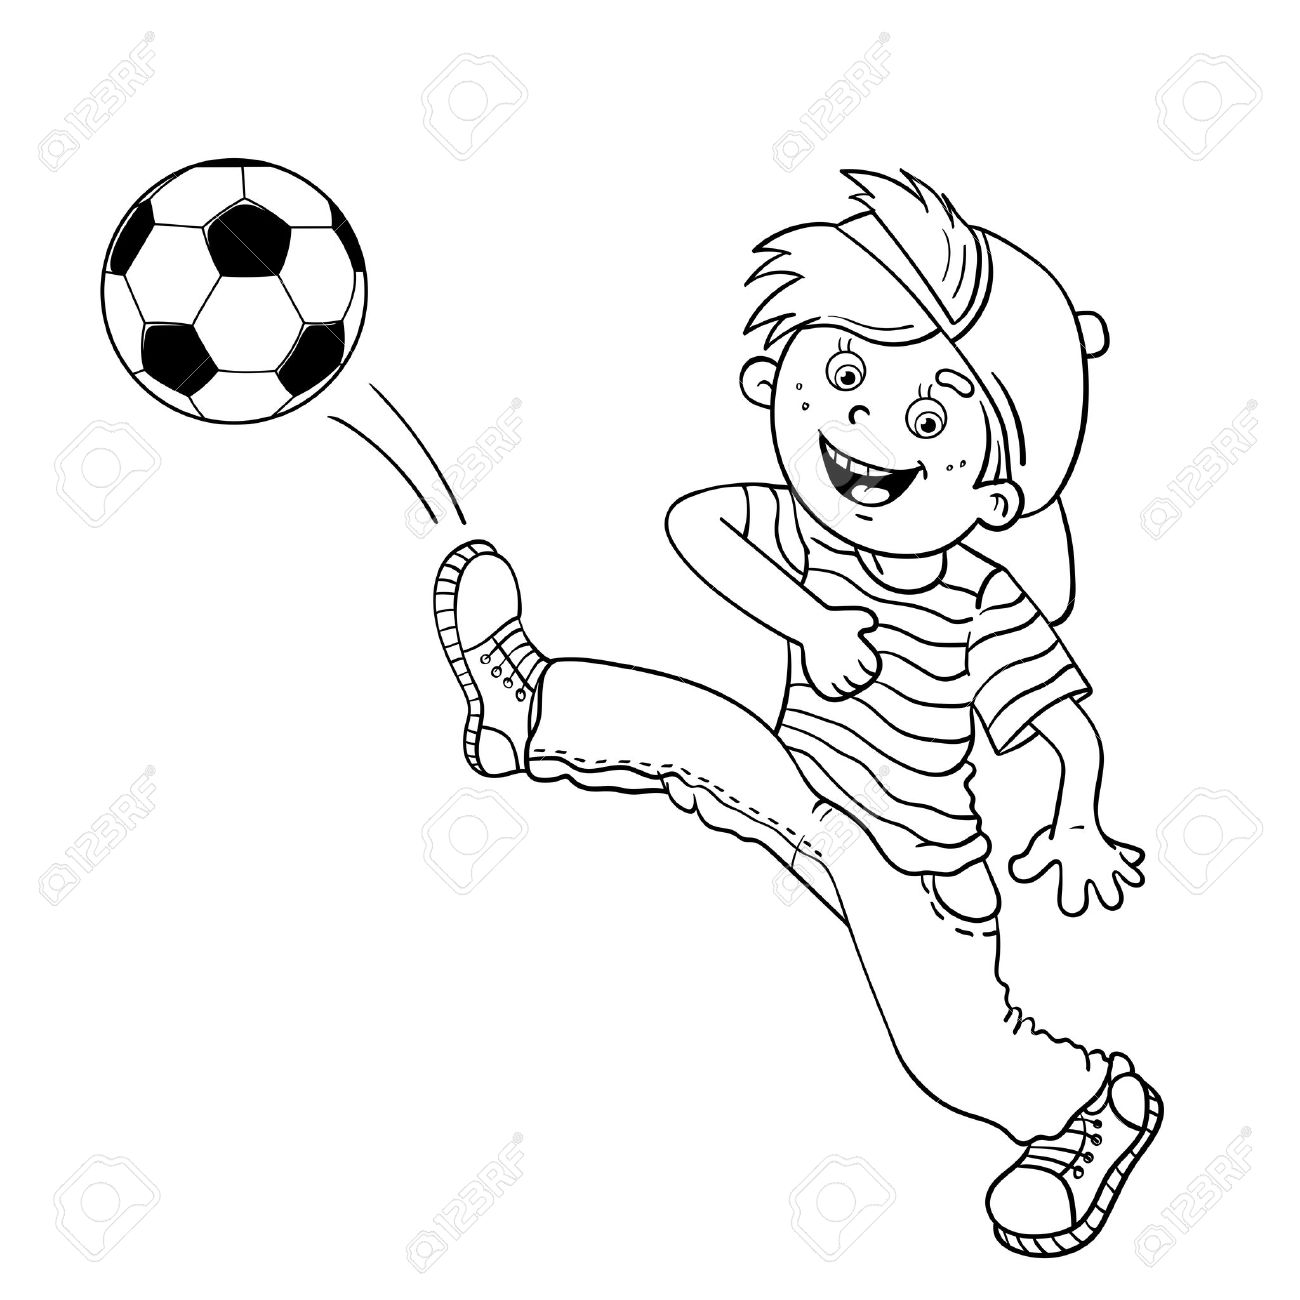 Coloring Page Outline Of A Cartoon Boy kicking a soccer ball.